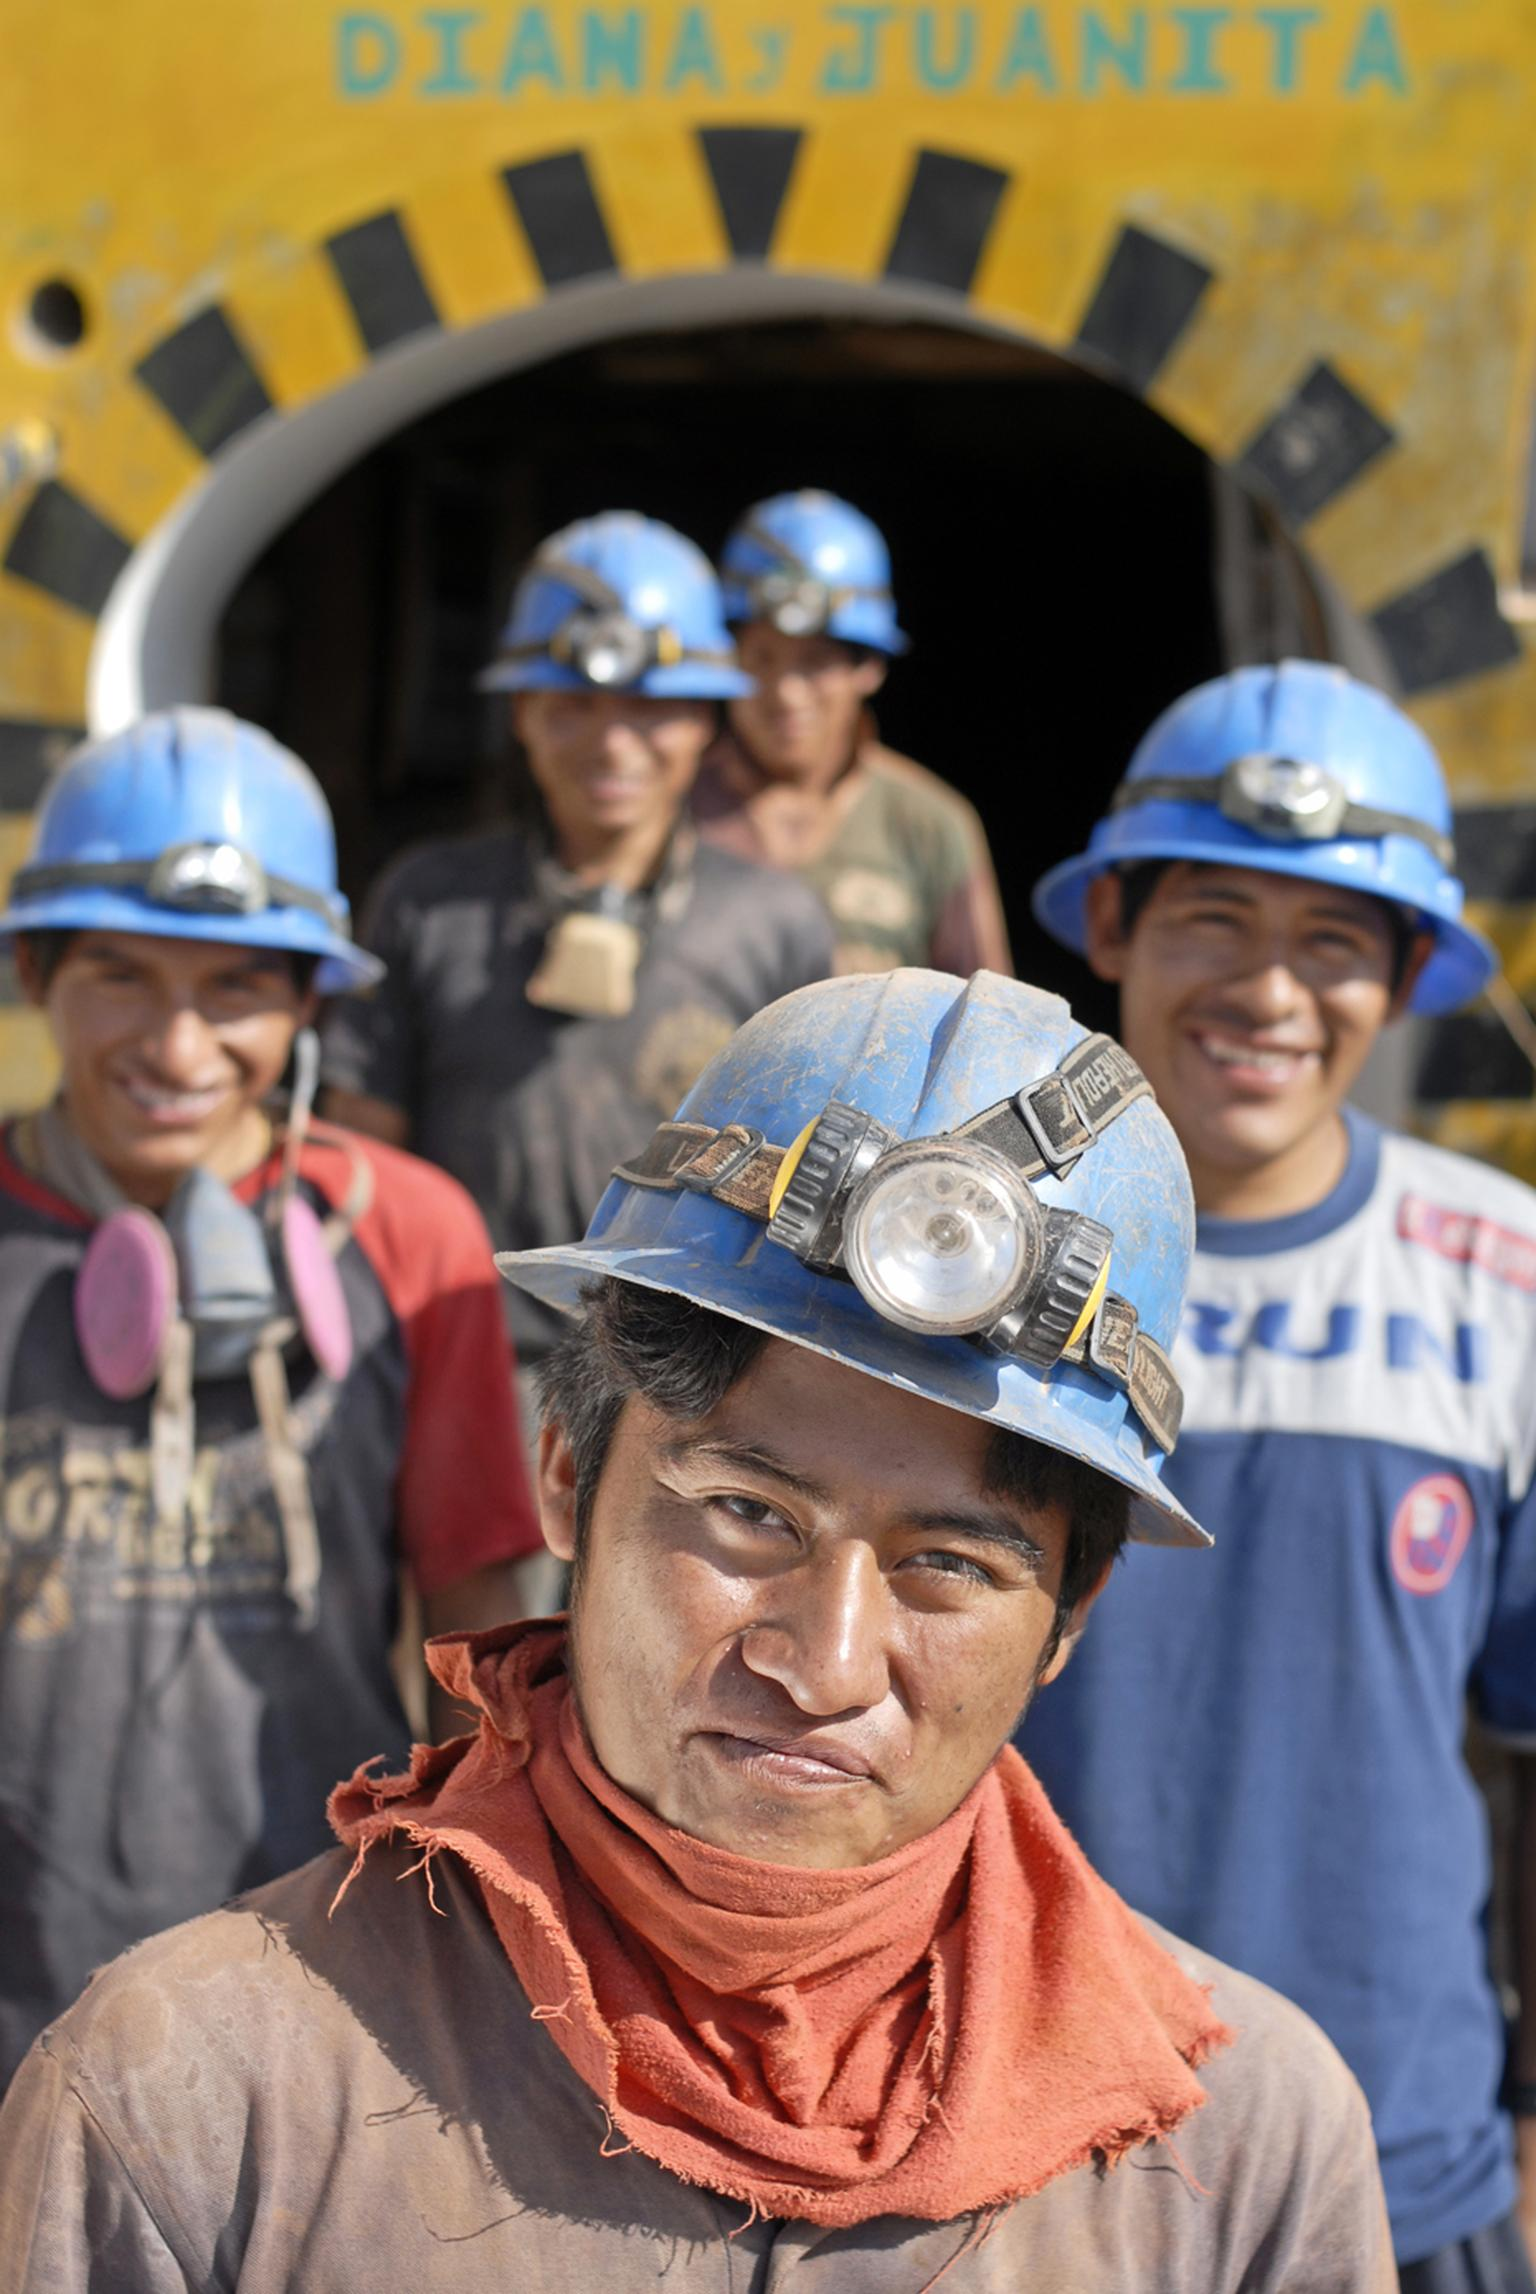 Thanks to the Fairmined standard, anyone who buys gold or other Fairmined-certified metals directly supports those working in community mines